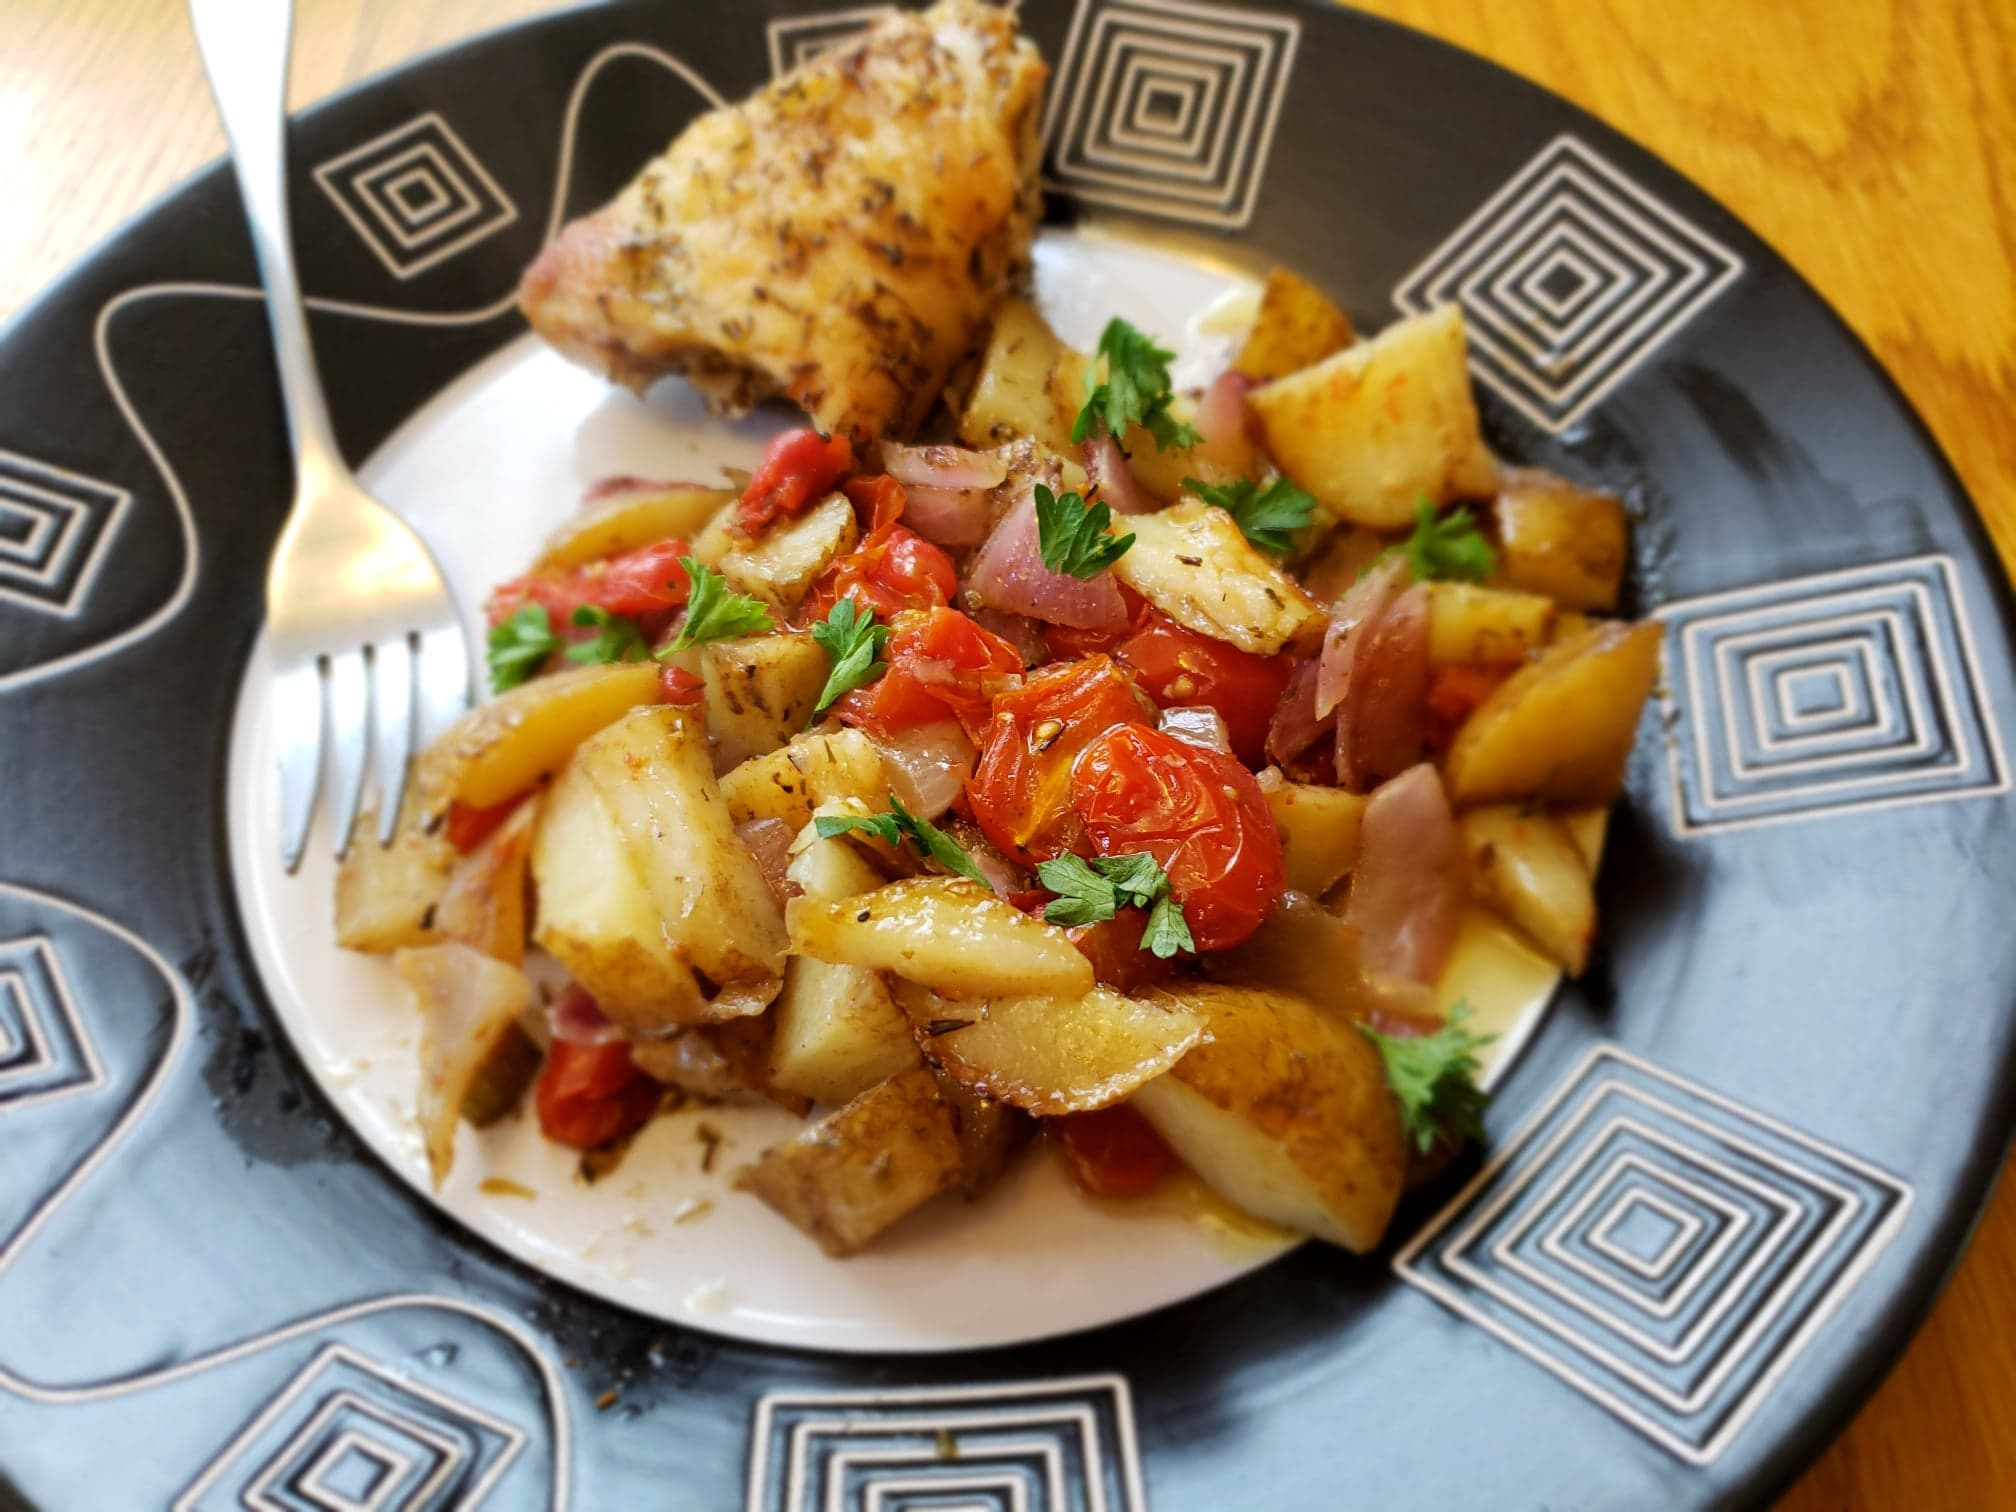 Oven Roasted Vegetables and Chicken